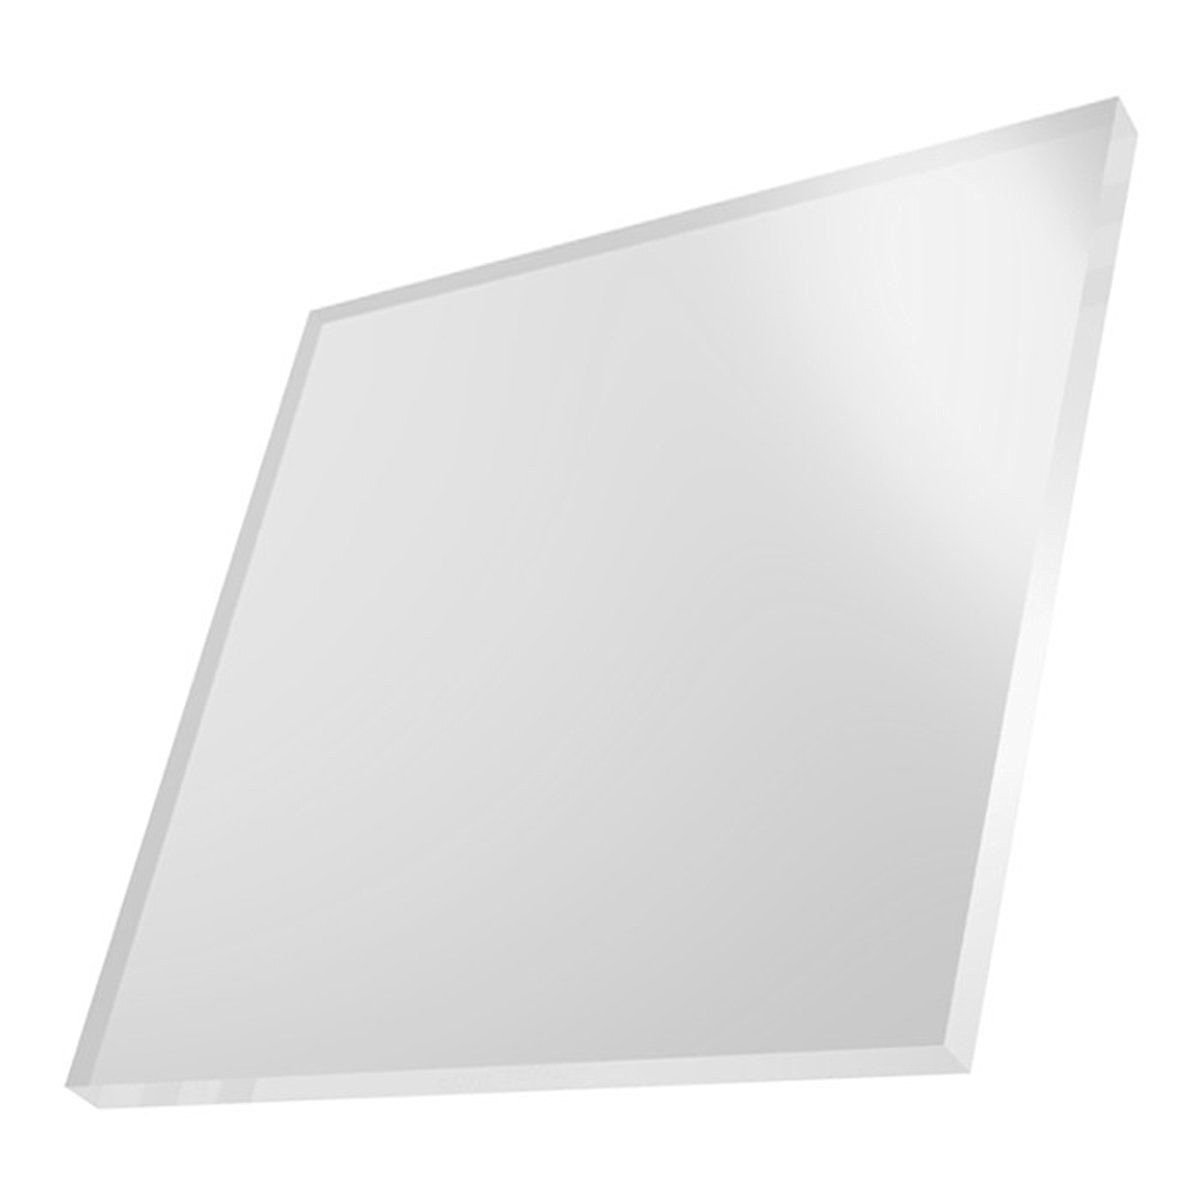 PLEXIGLASS ACRYLIC SHEET USED IN CRAFT NAMEPLATE GLAZING RISER 24X48 3MM WHITE